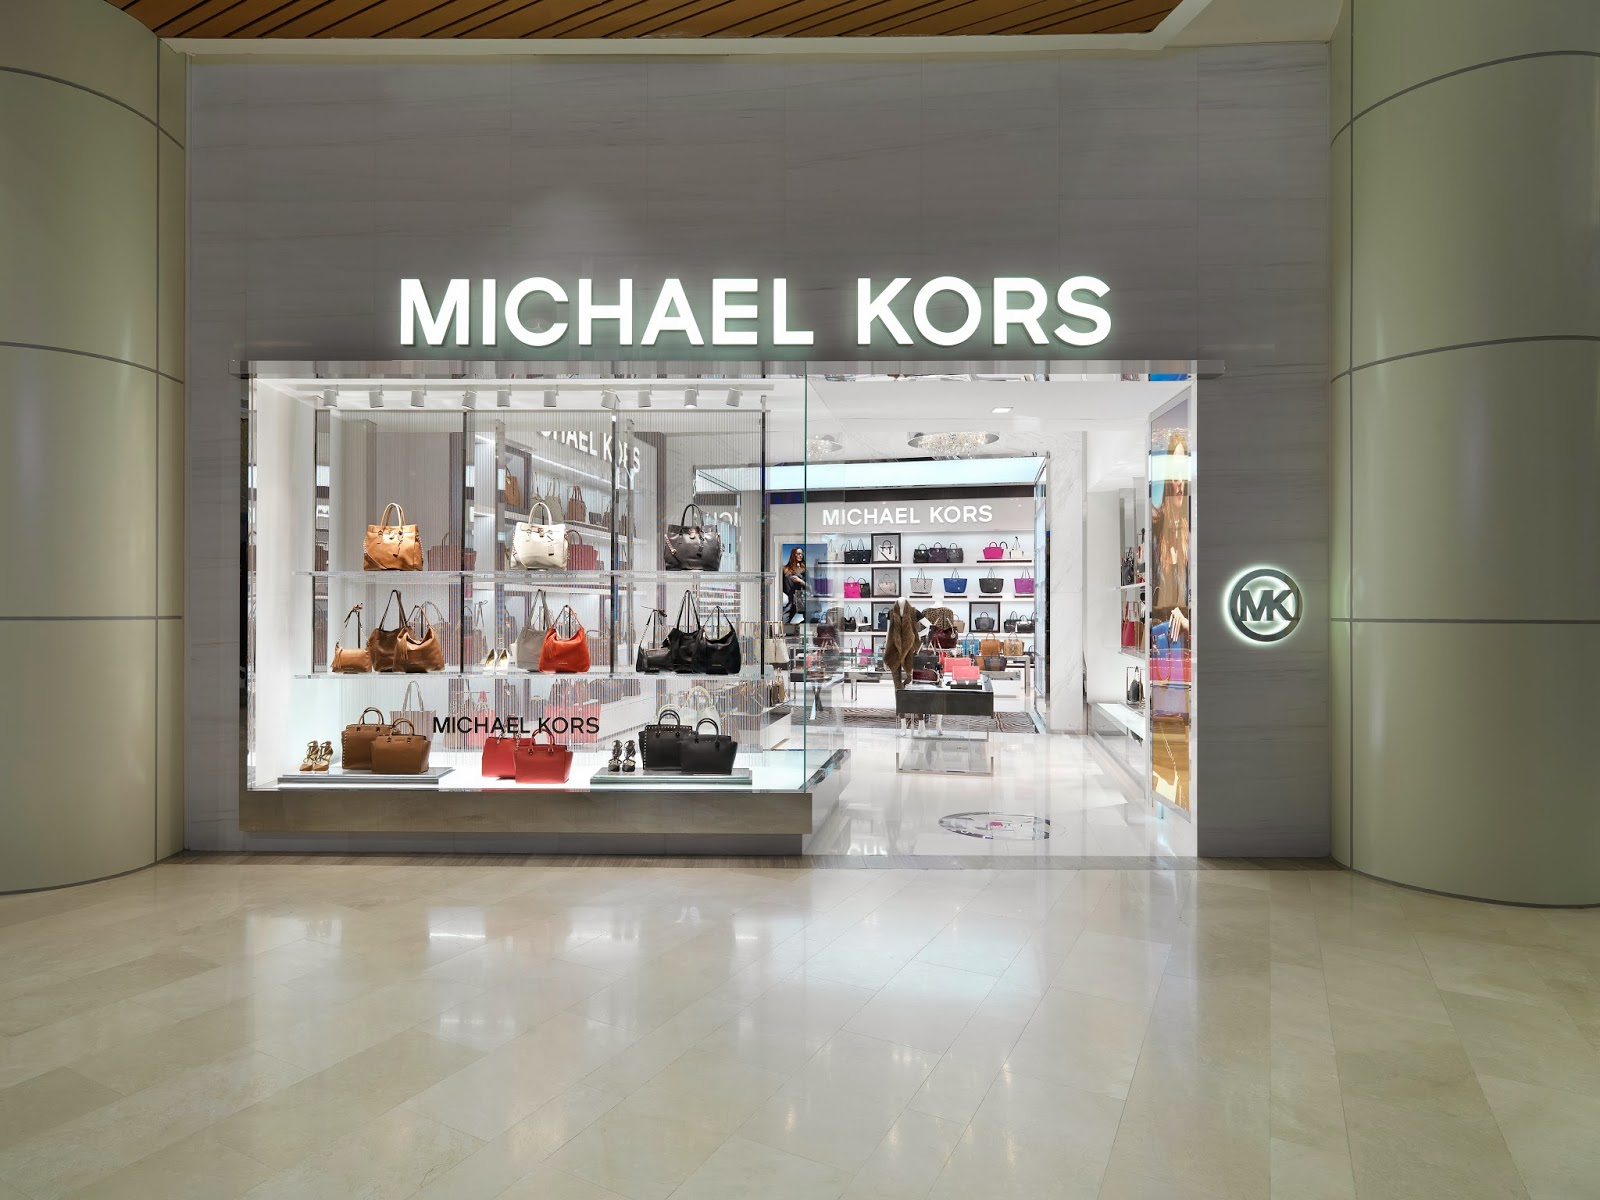 michael kors to open its 1st lifestyle store in penang huney 39 z world. Black Bedroom Furniture Sets. Home Design Ideas